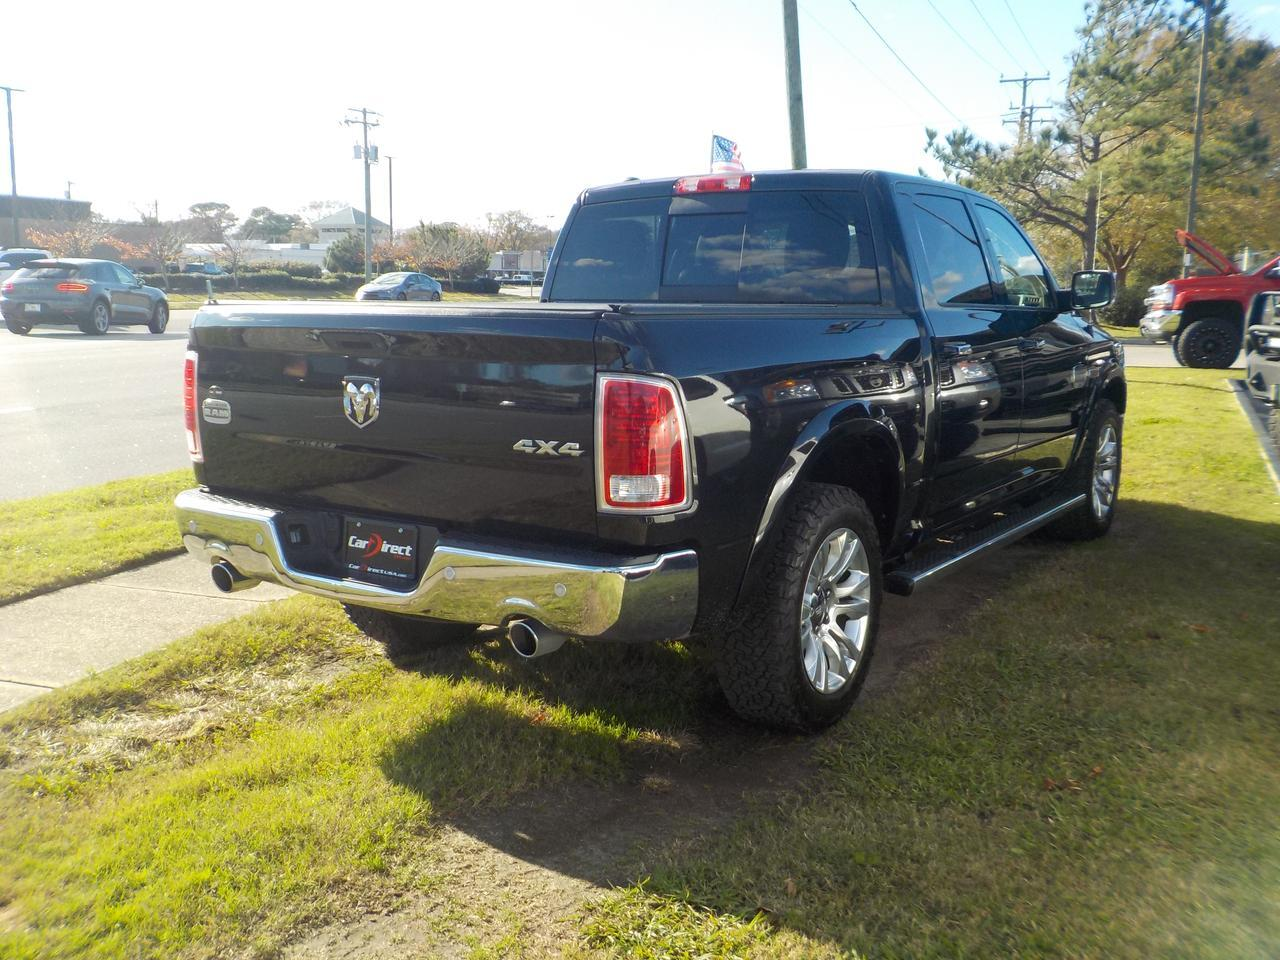 2016 RAM 1500 CREW CAB LARAMIE LONGHORN 4X4, 3.0L ECO DIESEL, LEATHER, NAVIGATION, REMOTE START, BACK UP CAMERA! Virginia Beach VA